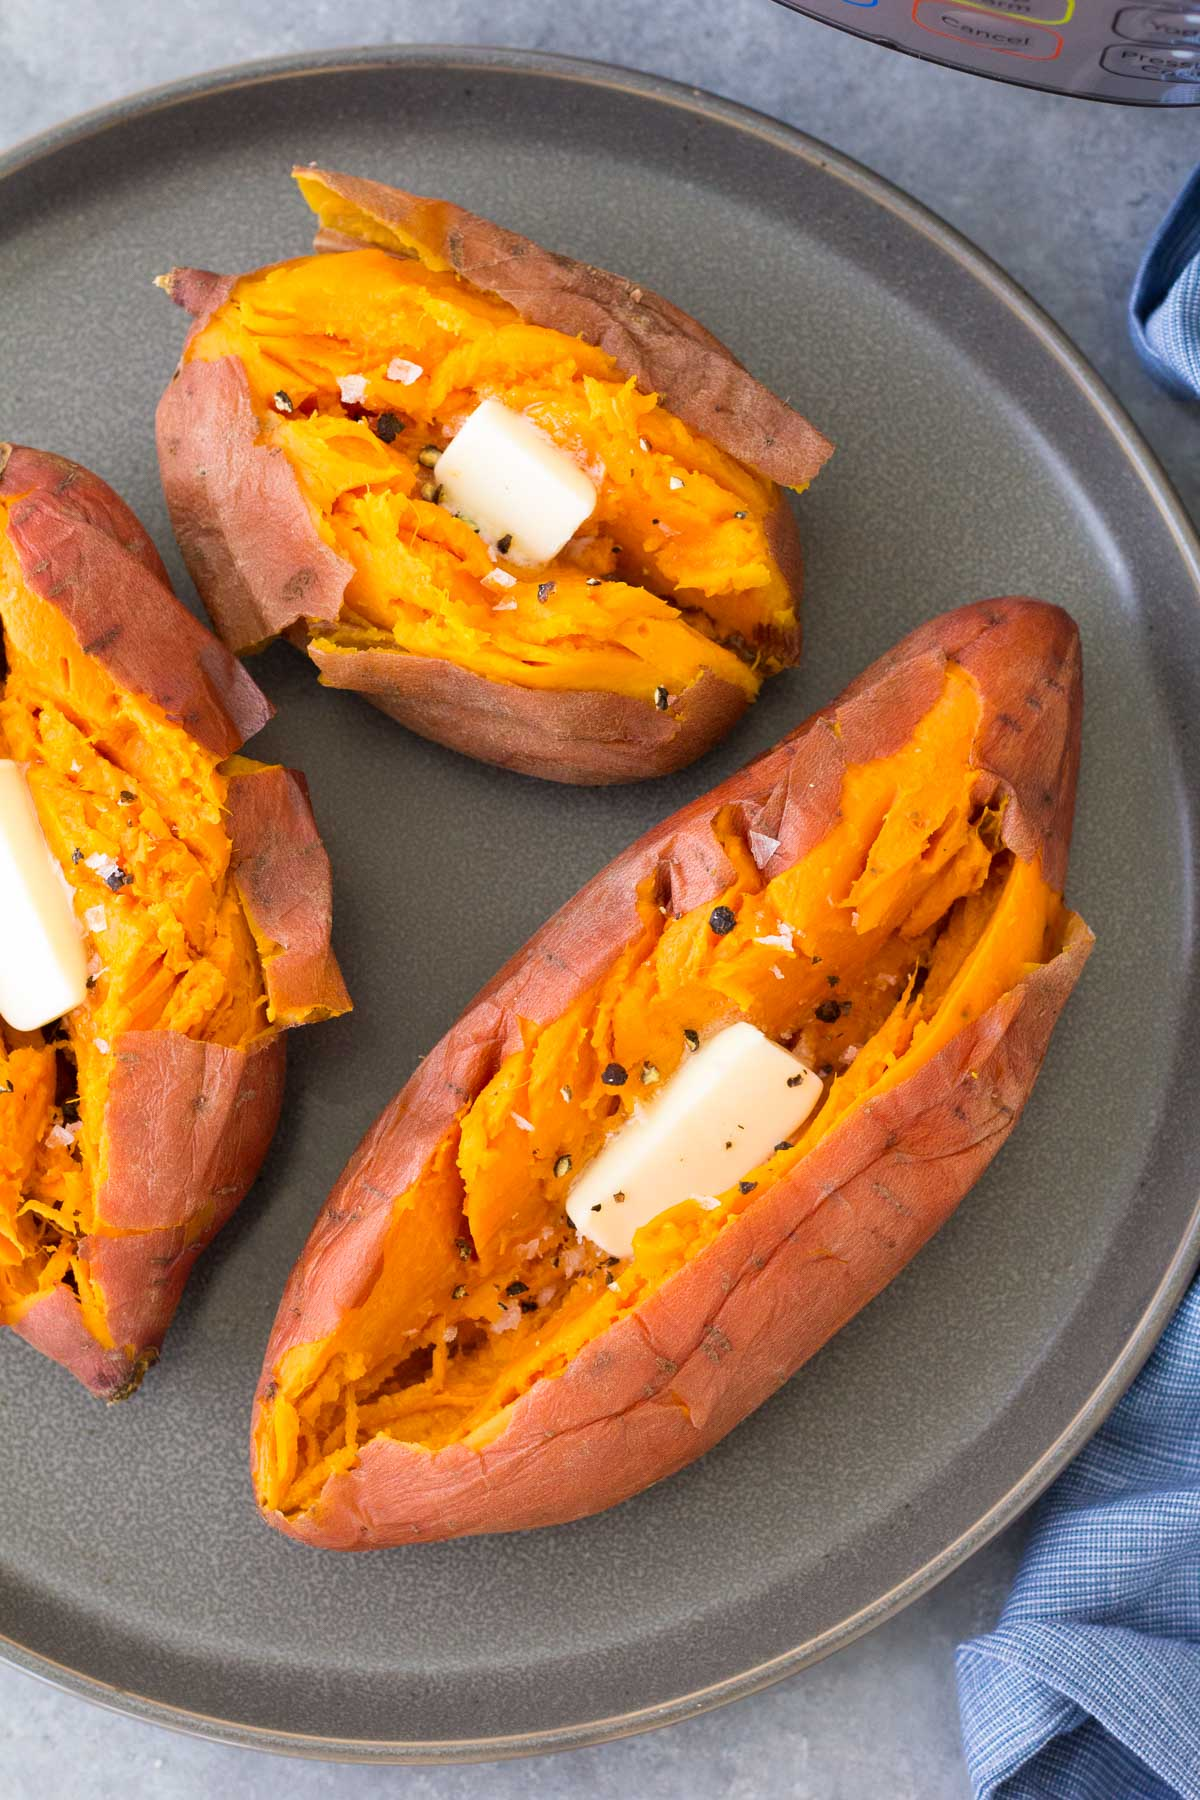 Baked Instant Pot sweet potatoes with butter, salt and pepper on a gray plate.